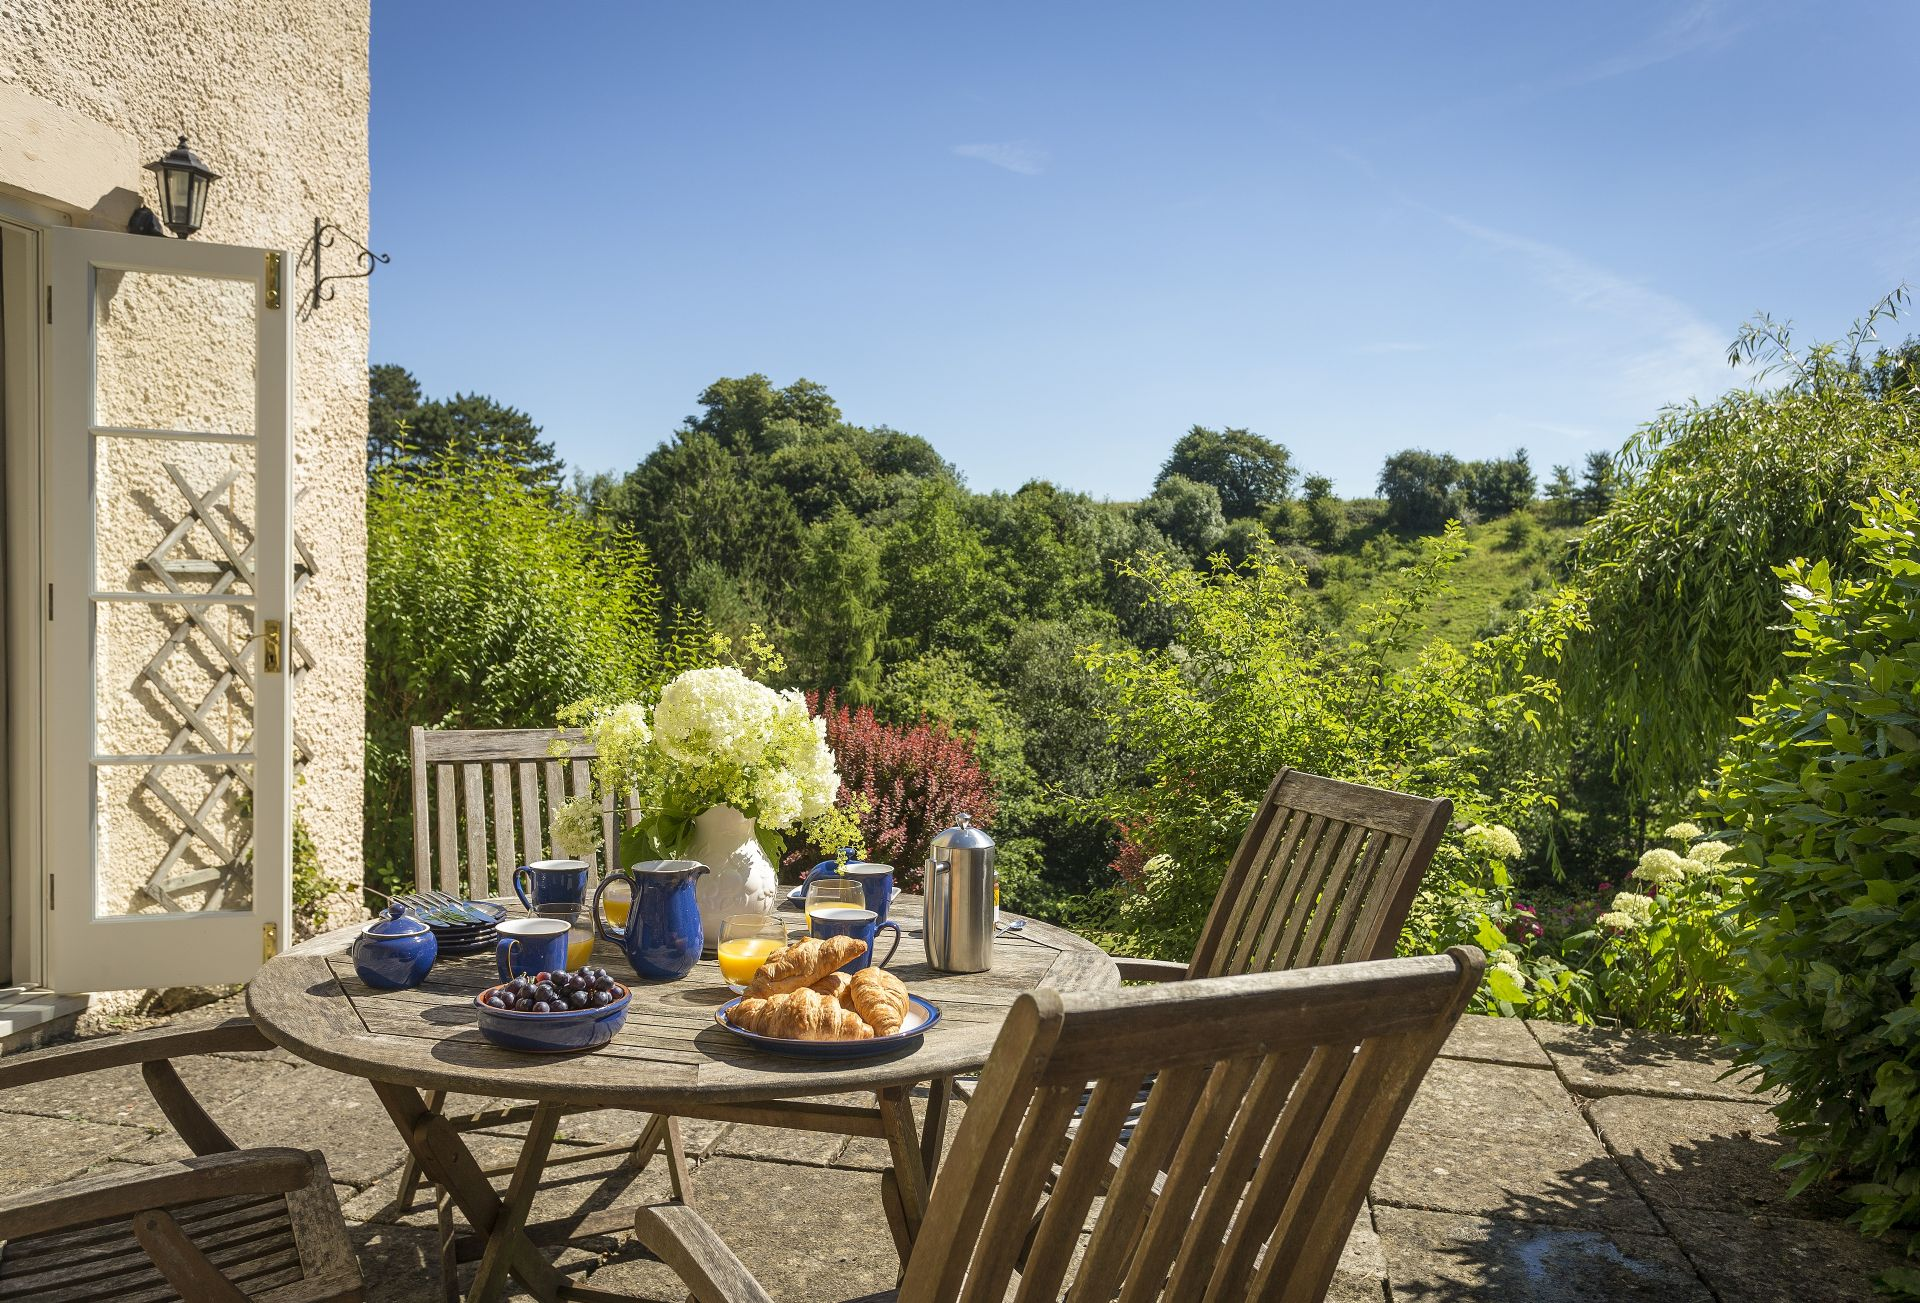 Perfect place for alfresco entertaining